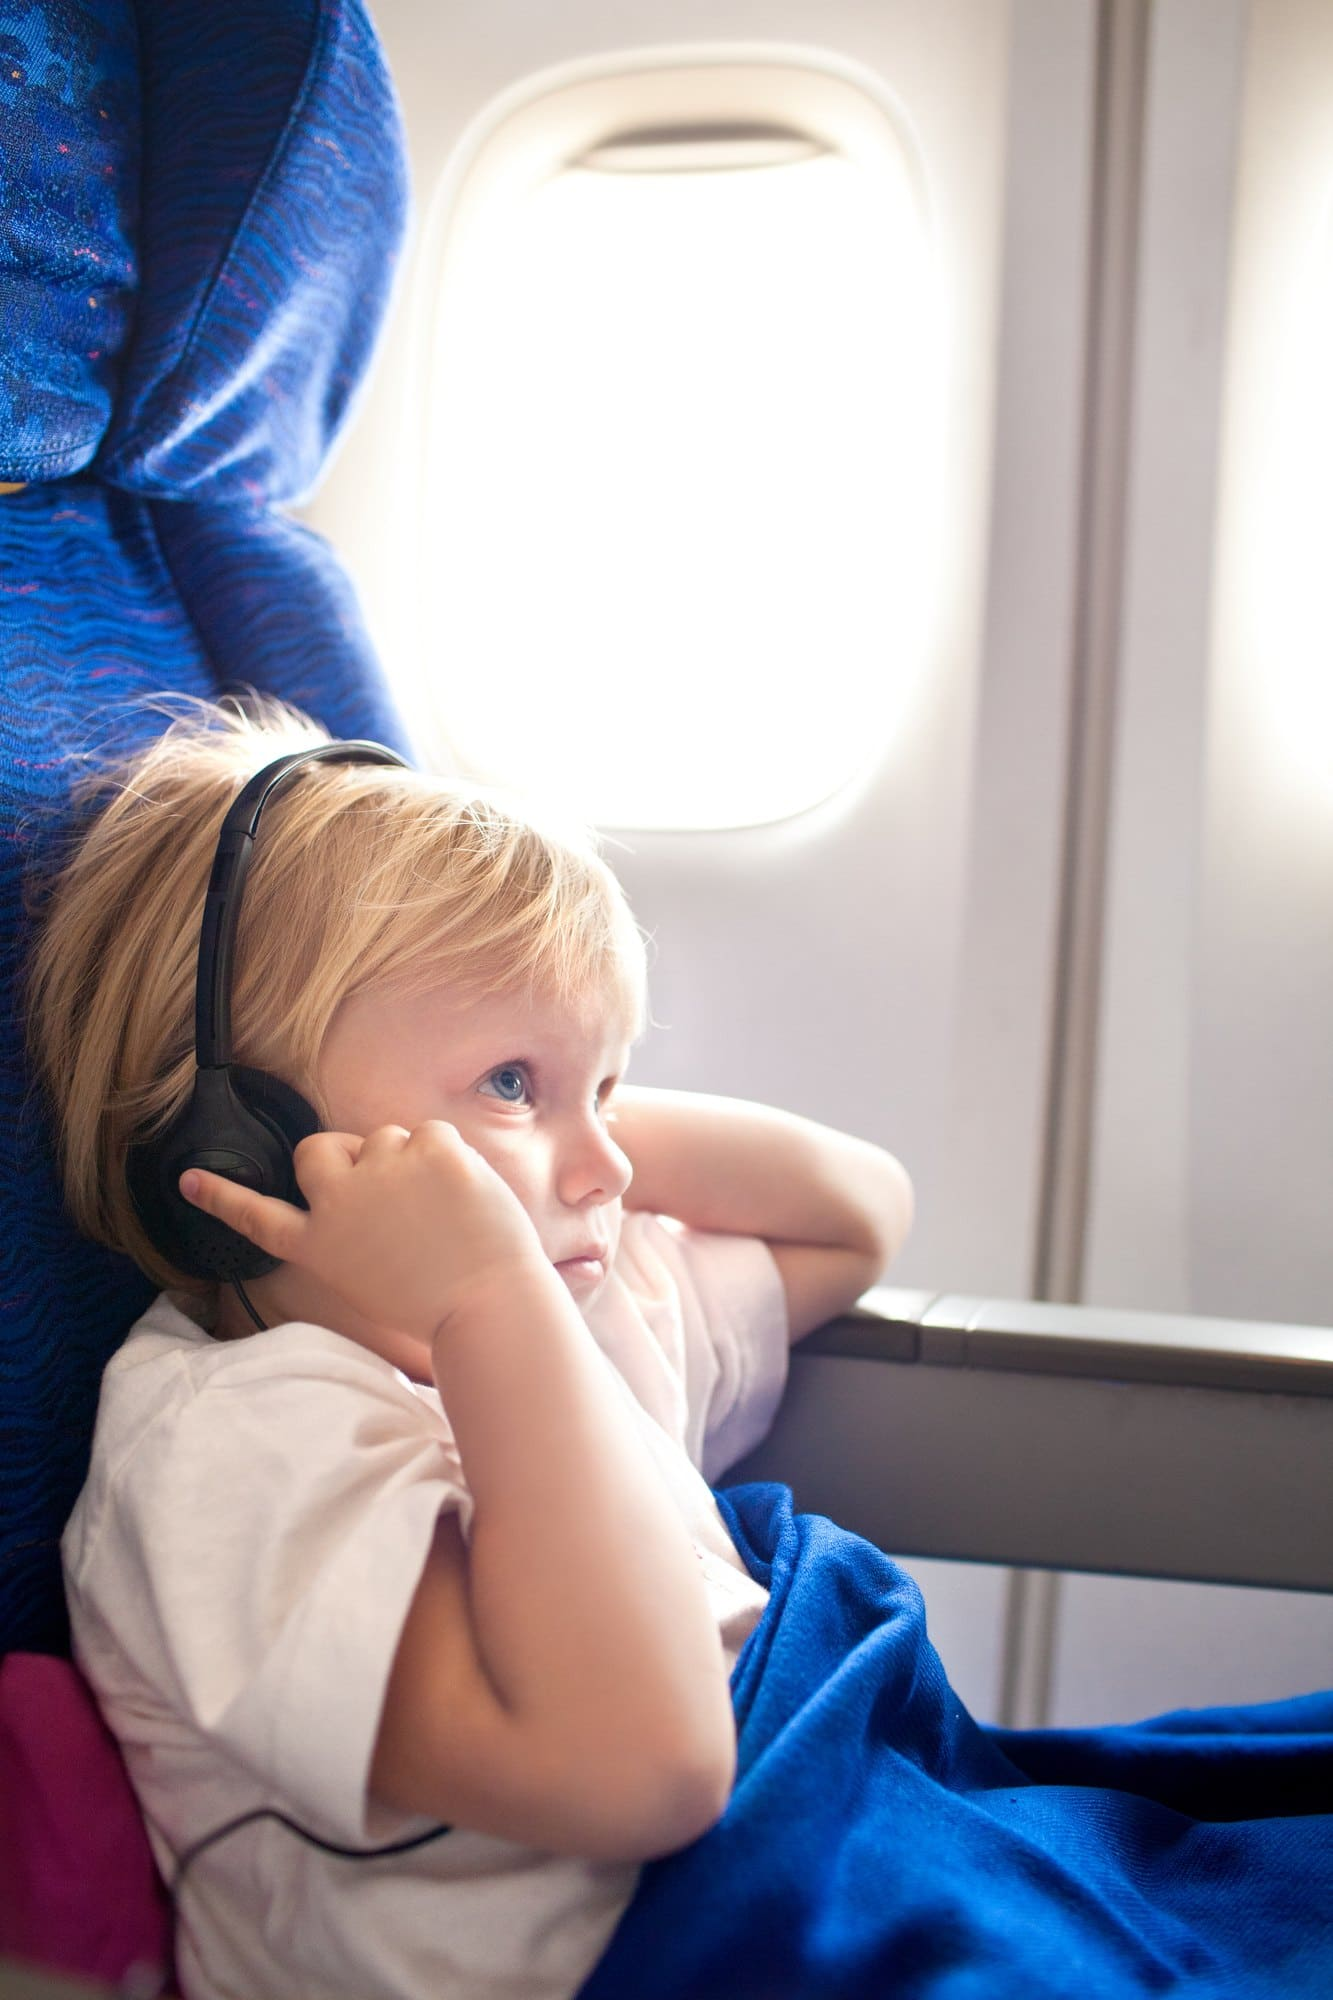 Listening to music or an audiobook can distract children from the feeling of motion sickness while traveling